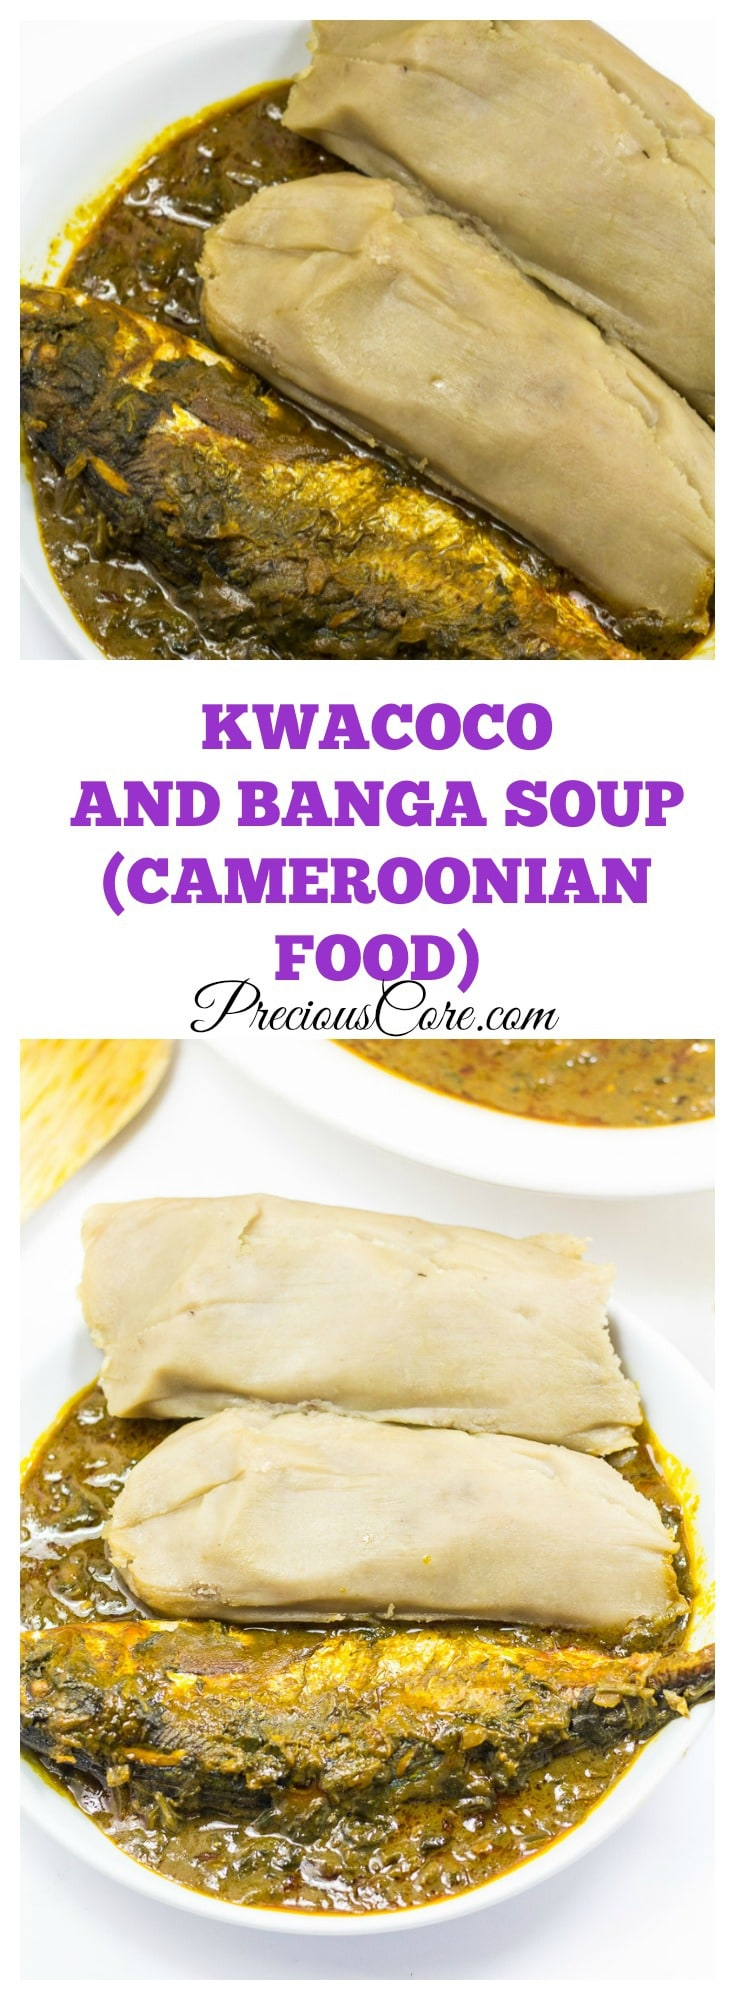 Kwacoco and Banga Soup - Cameroonian Food